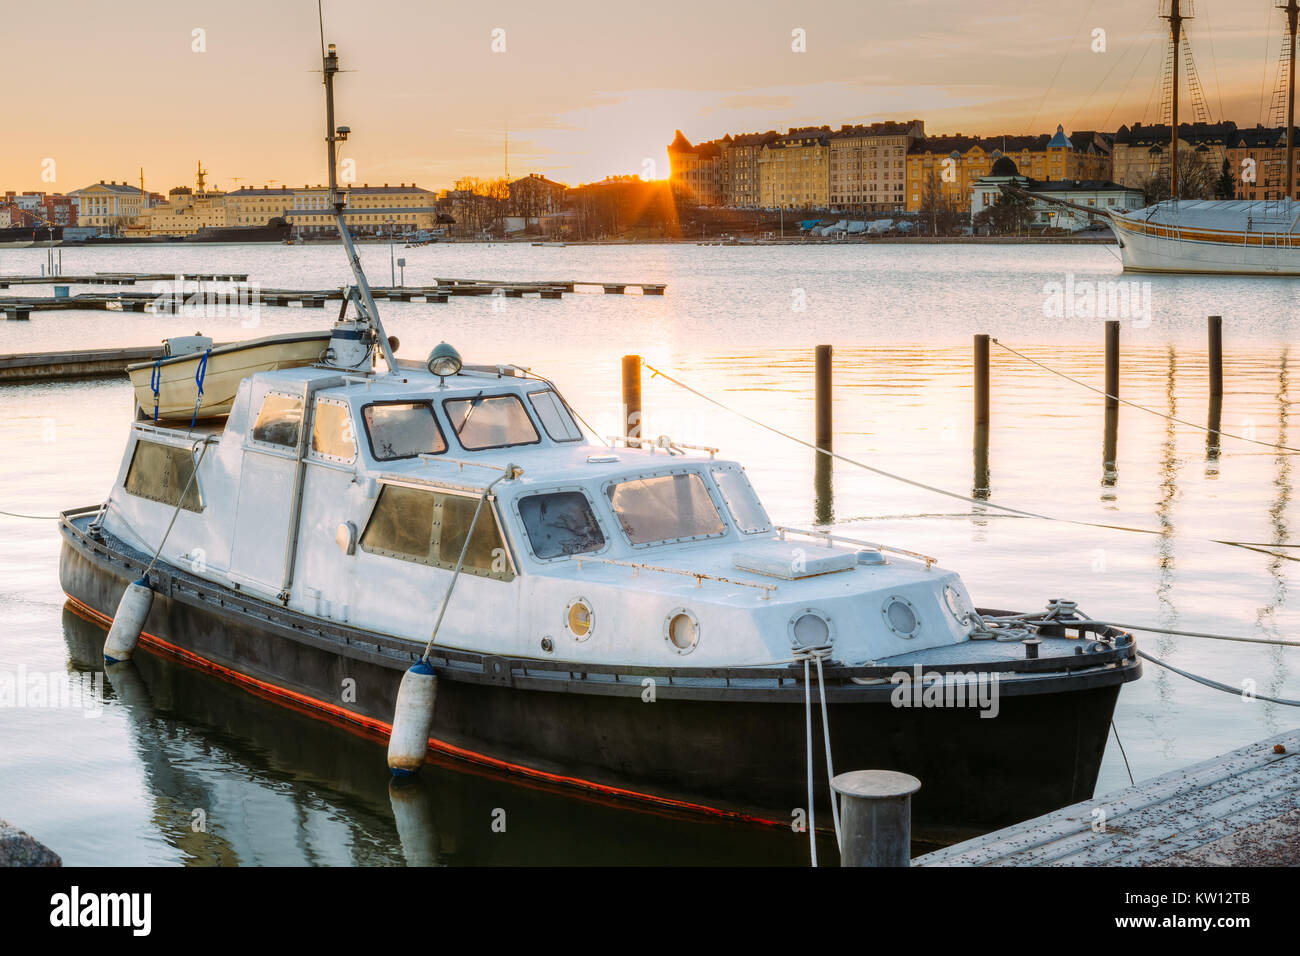 Helsinki, Finland. Marine Boat, Powerboat Moored At Berth In Sunrise Time In Winter Morning. - Stock Image